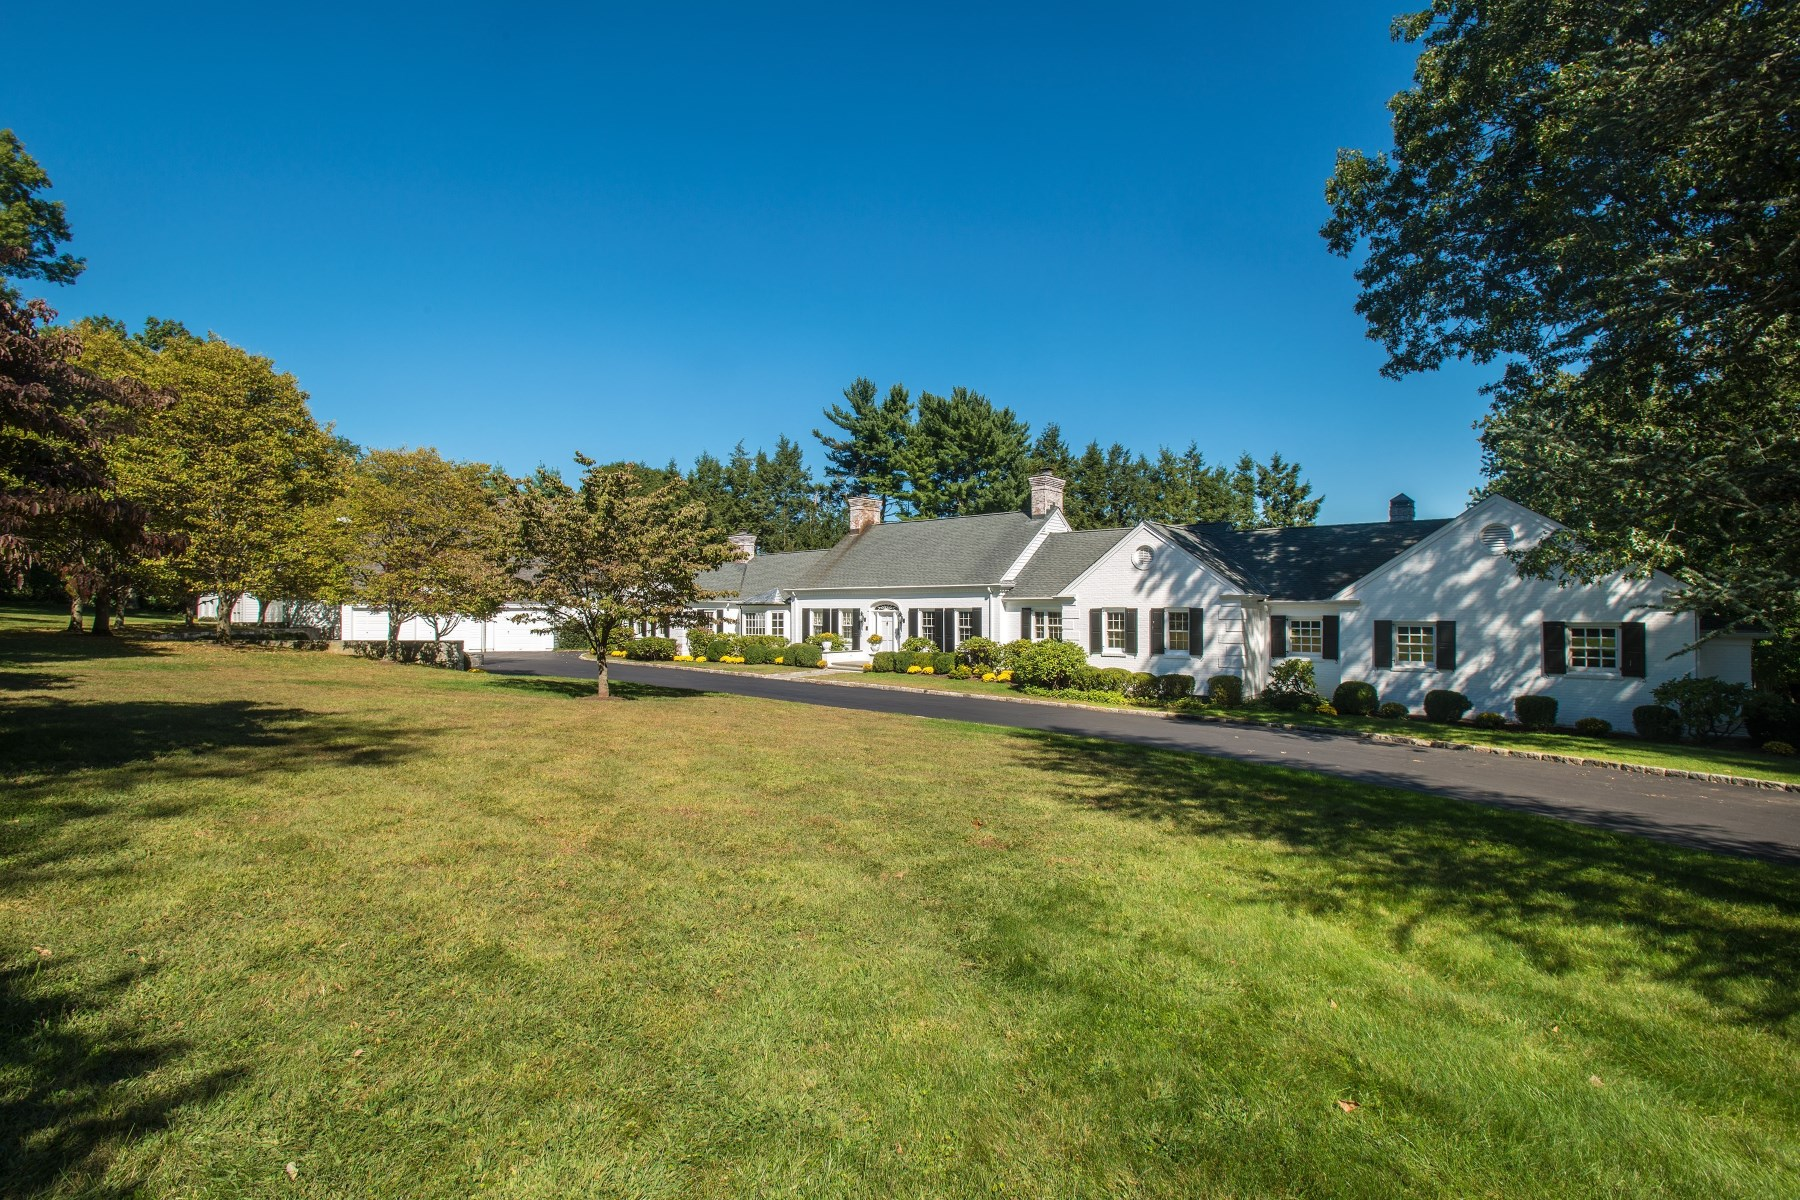 Single Family Home for Sale at 31 Meadowcroft Lane, Greenwich CT Mid-Country, Greenwich, Connecticut, 06830 United States